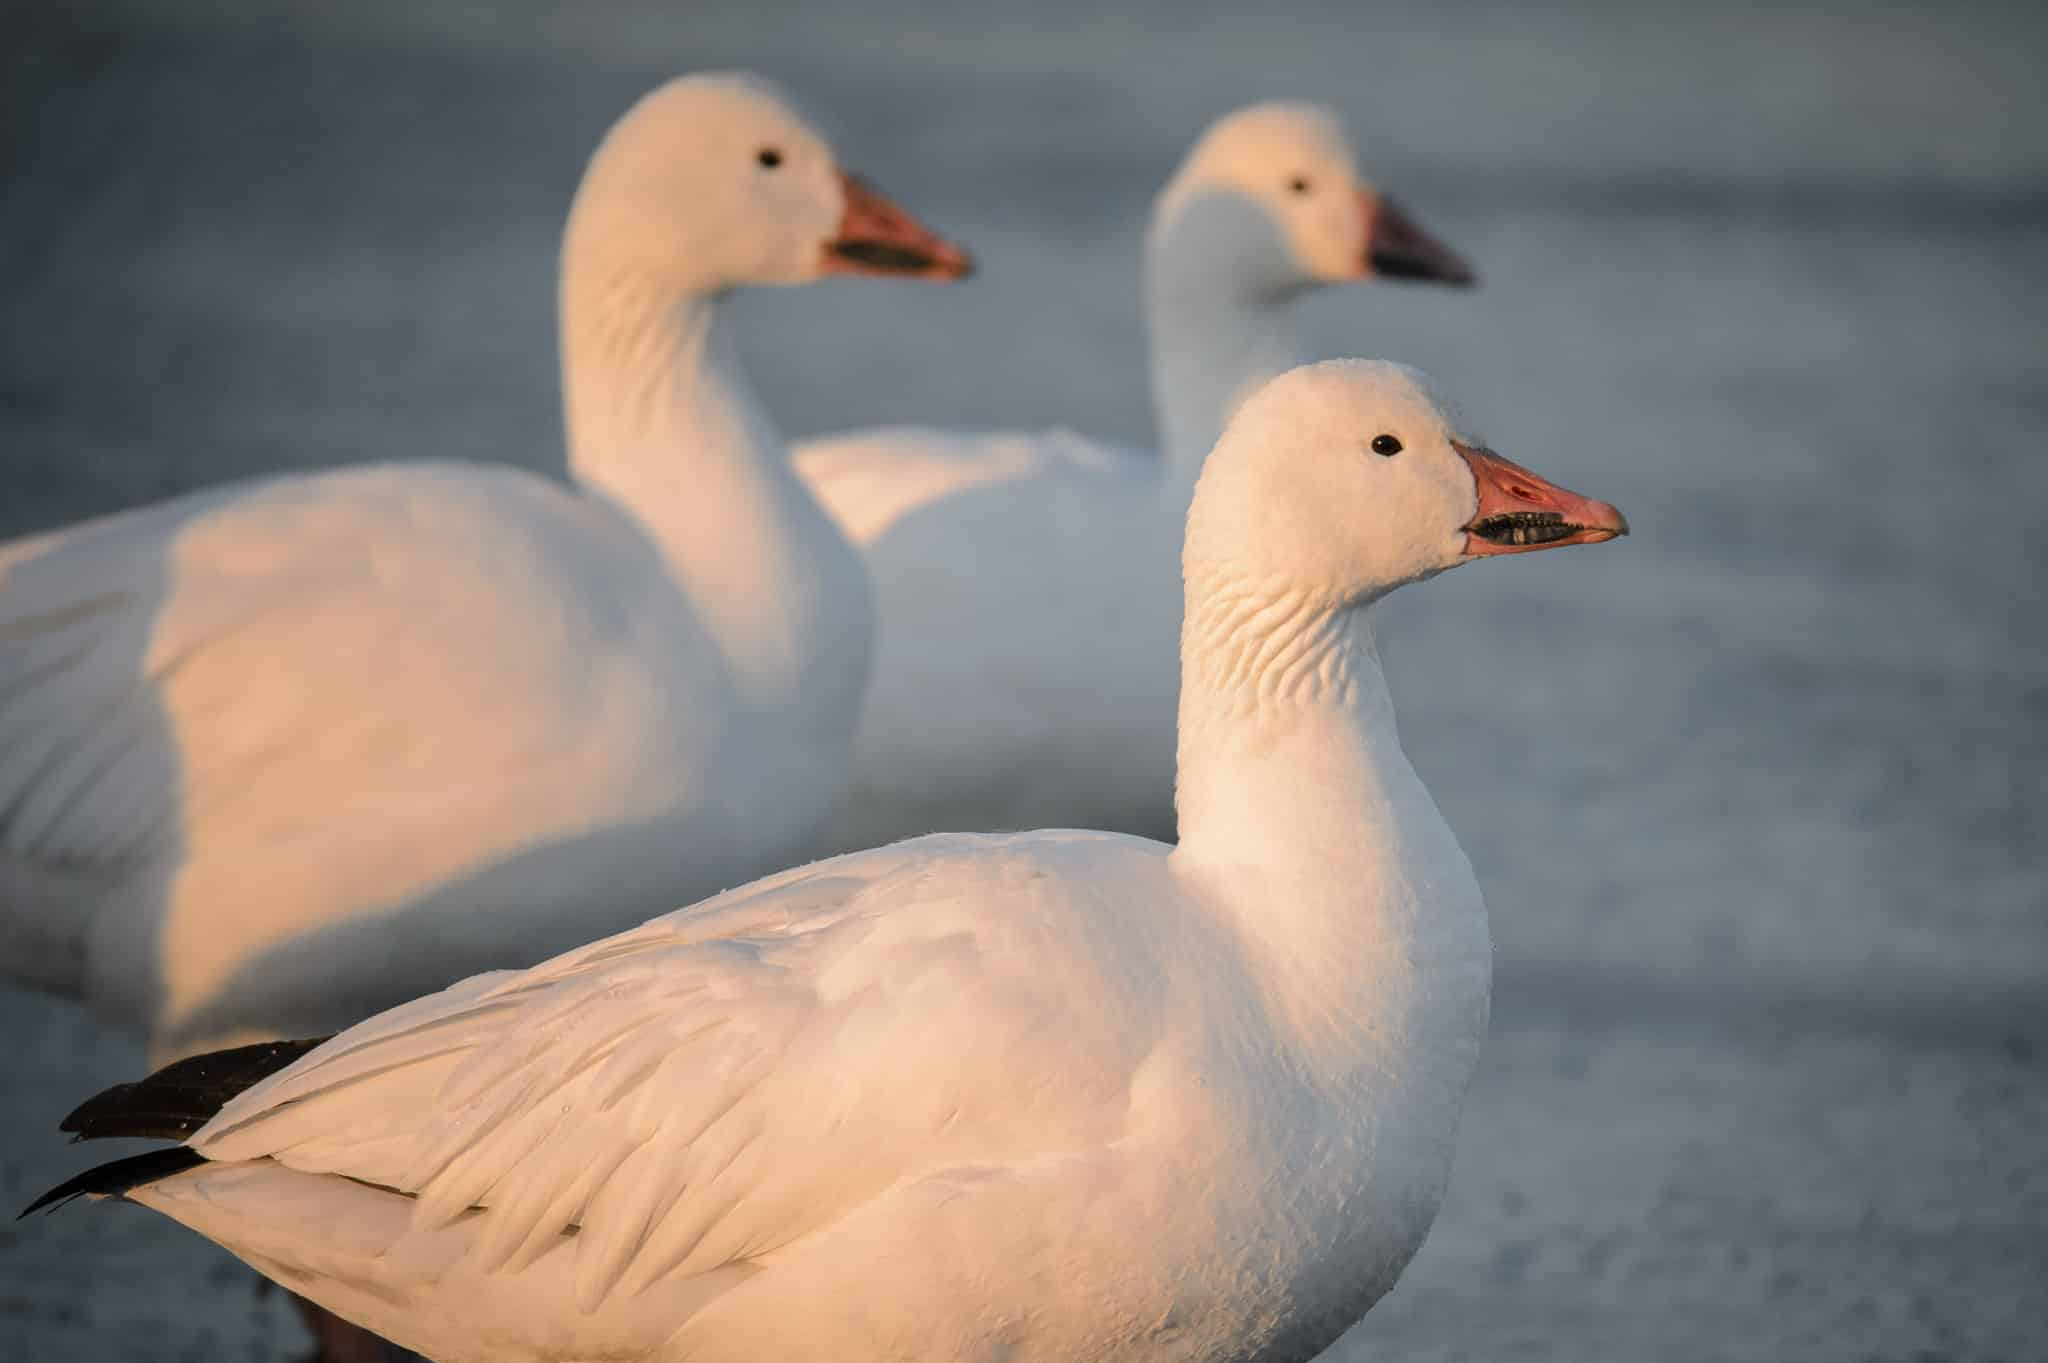 The black pattern on the meaks of these snow geese is called a grin patch. It is an identification characteristic for Snow Geese. These birds were photographed in Bosque del Apache National Wildlife Refuge near Socorro, New Mexico.